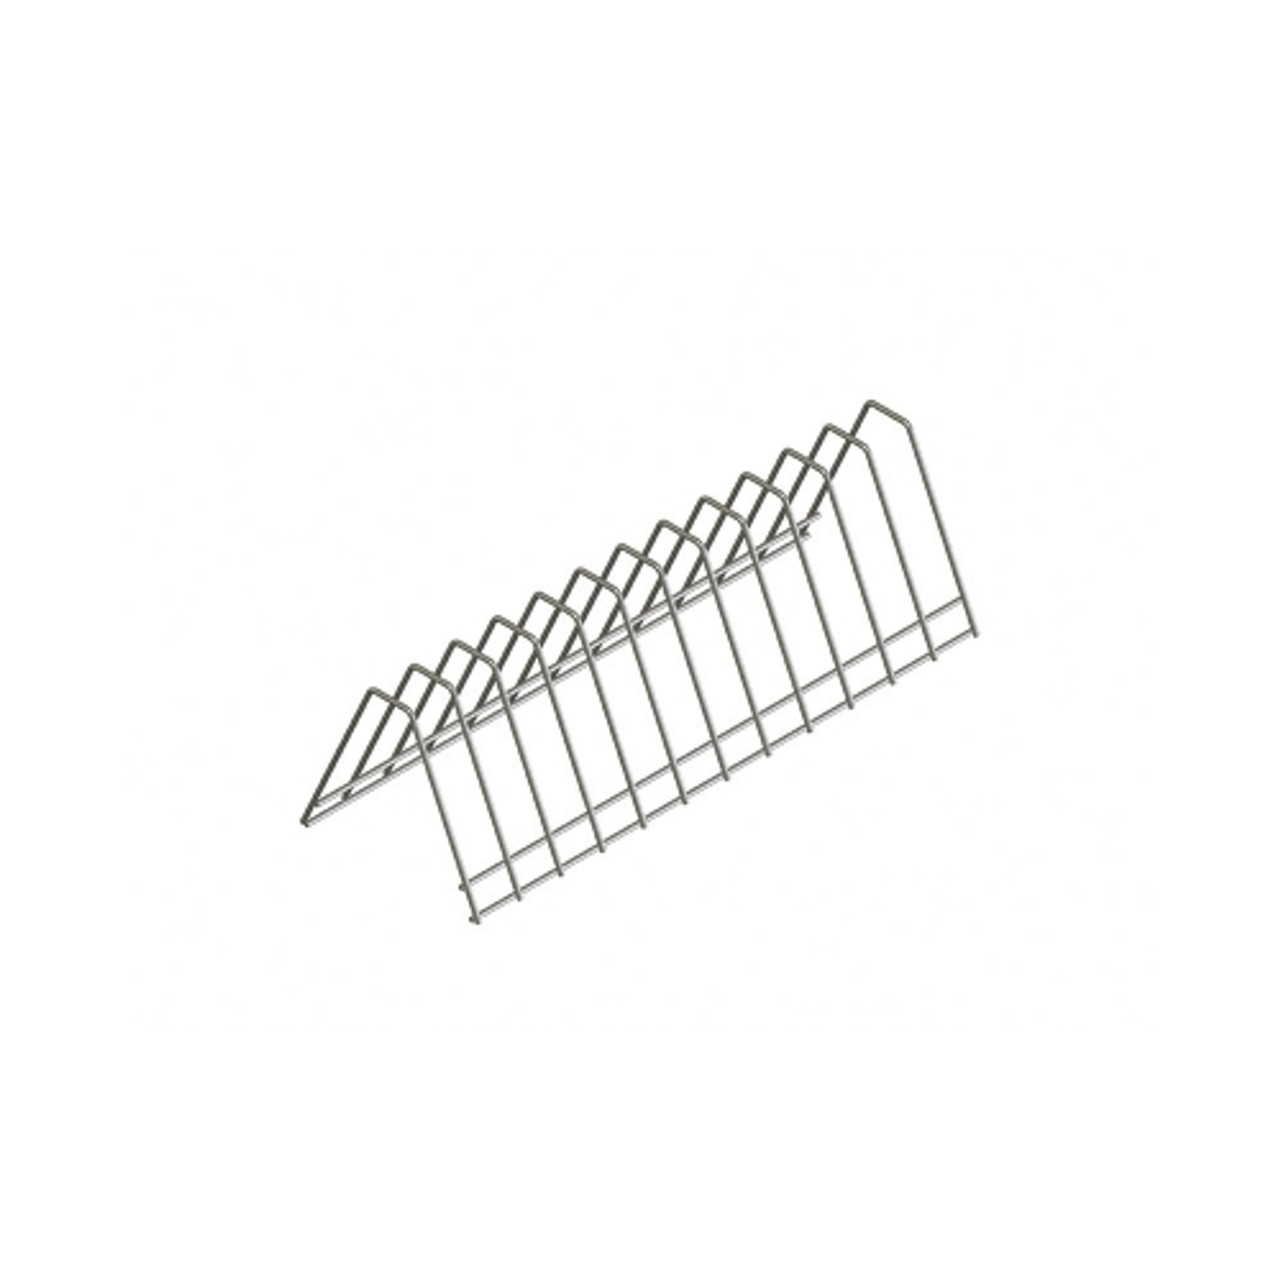 Smeg WH00S01 Wire Insert for Saucers - For Smeg Dishwashers